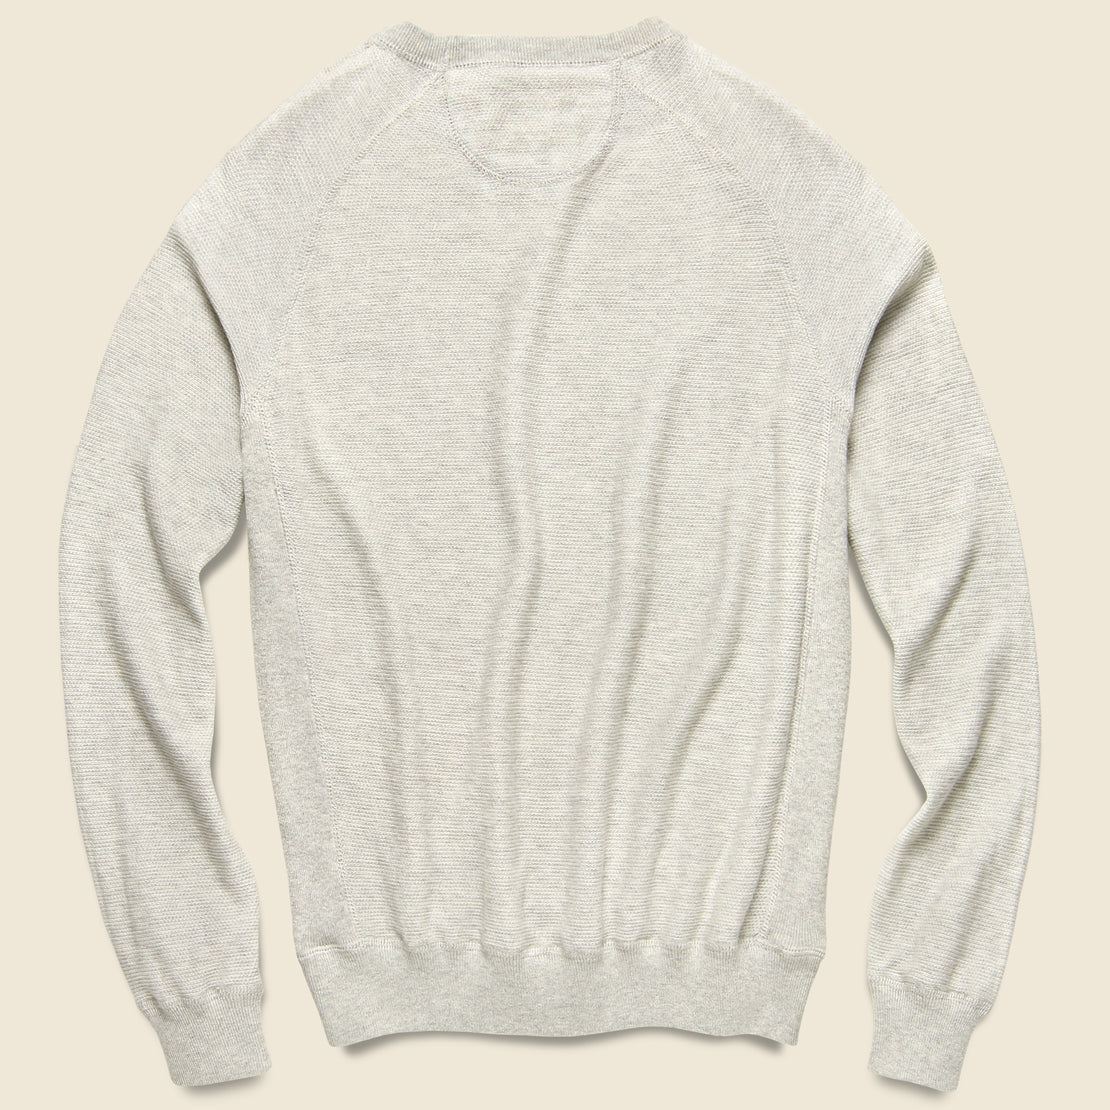 Coastline Crewneck - Heather Grey